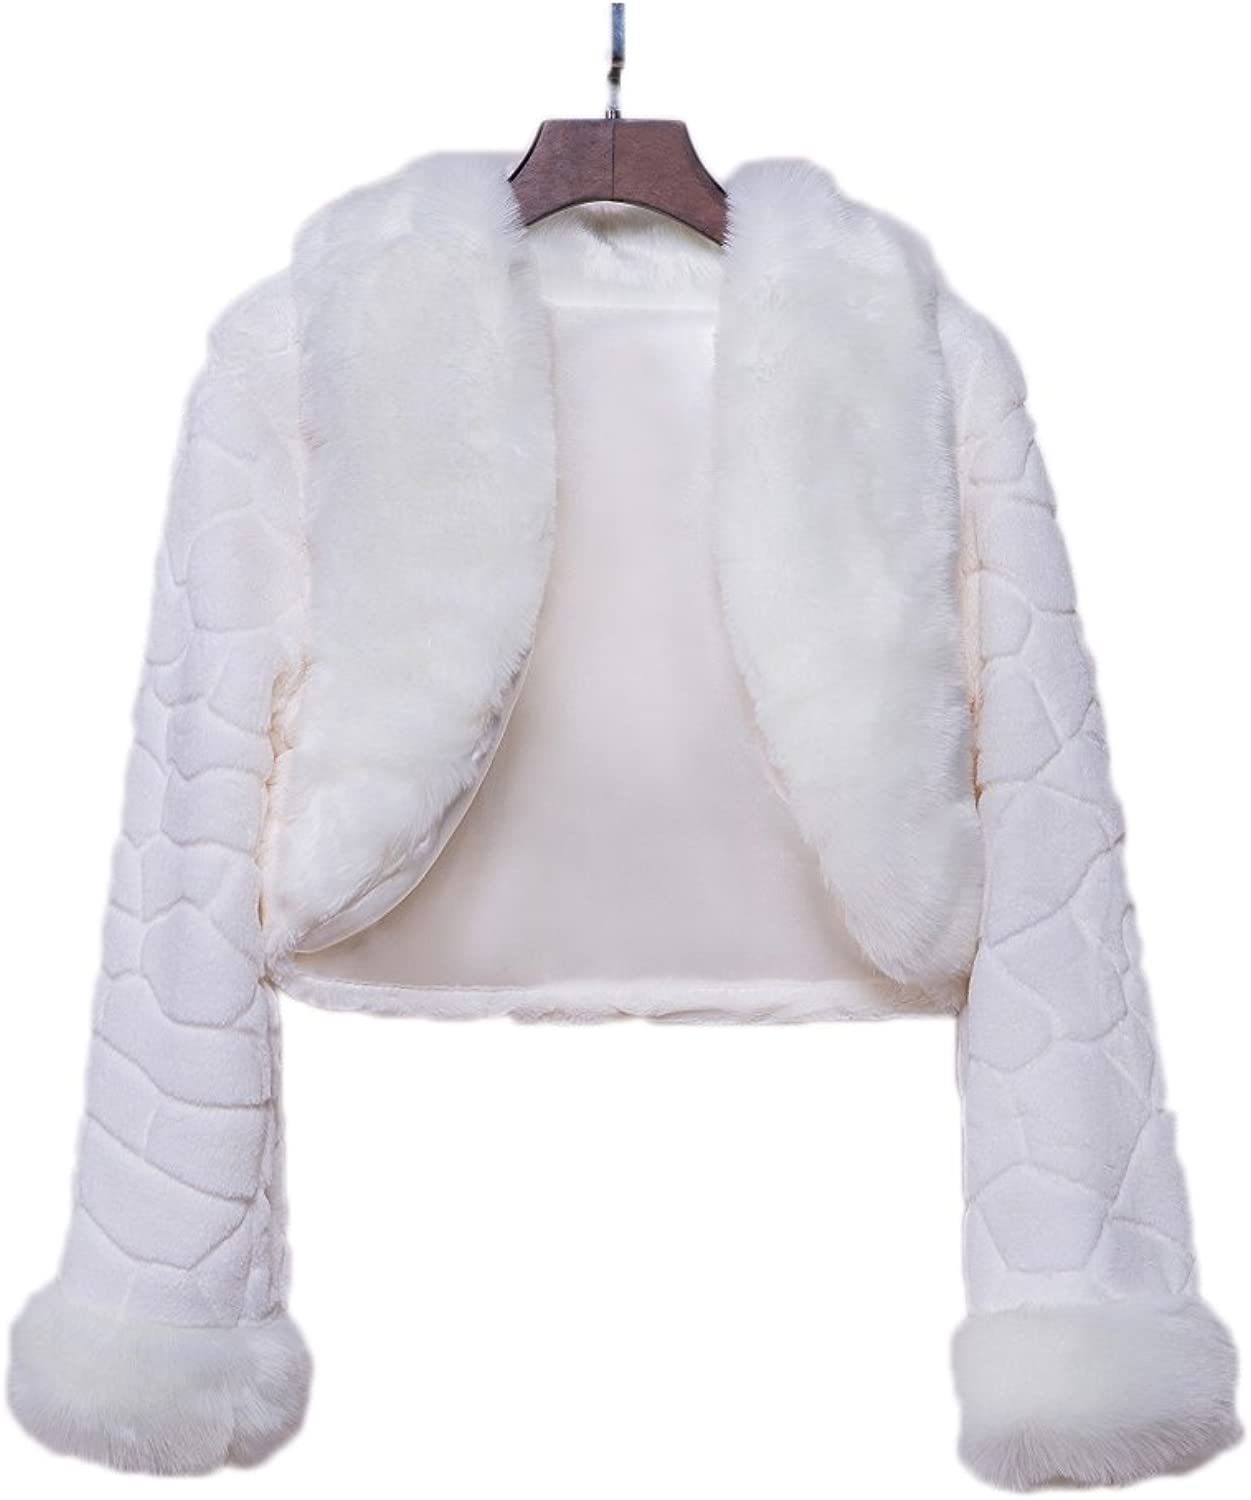 AK Beauty Winter Elegant Warm Faux Fur Bolero Wedding Wrap Shawl